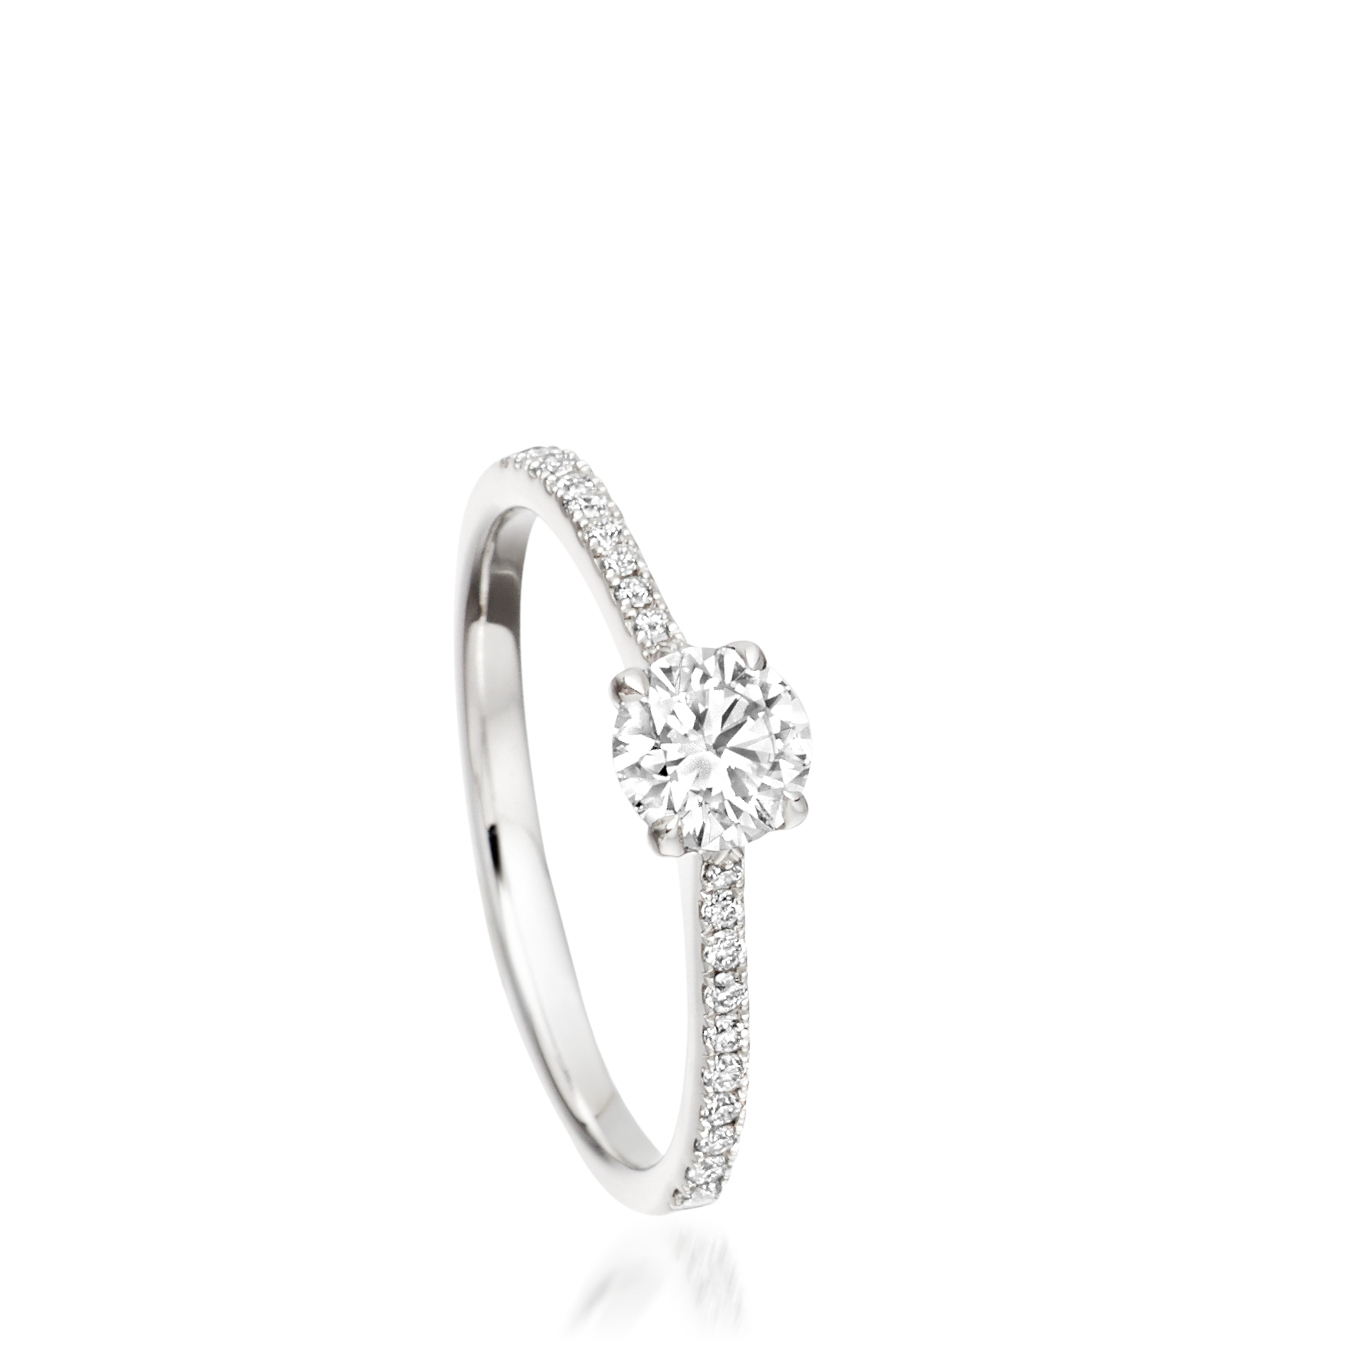 Lucille 0.5ct Diamond Ring